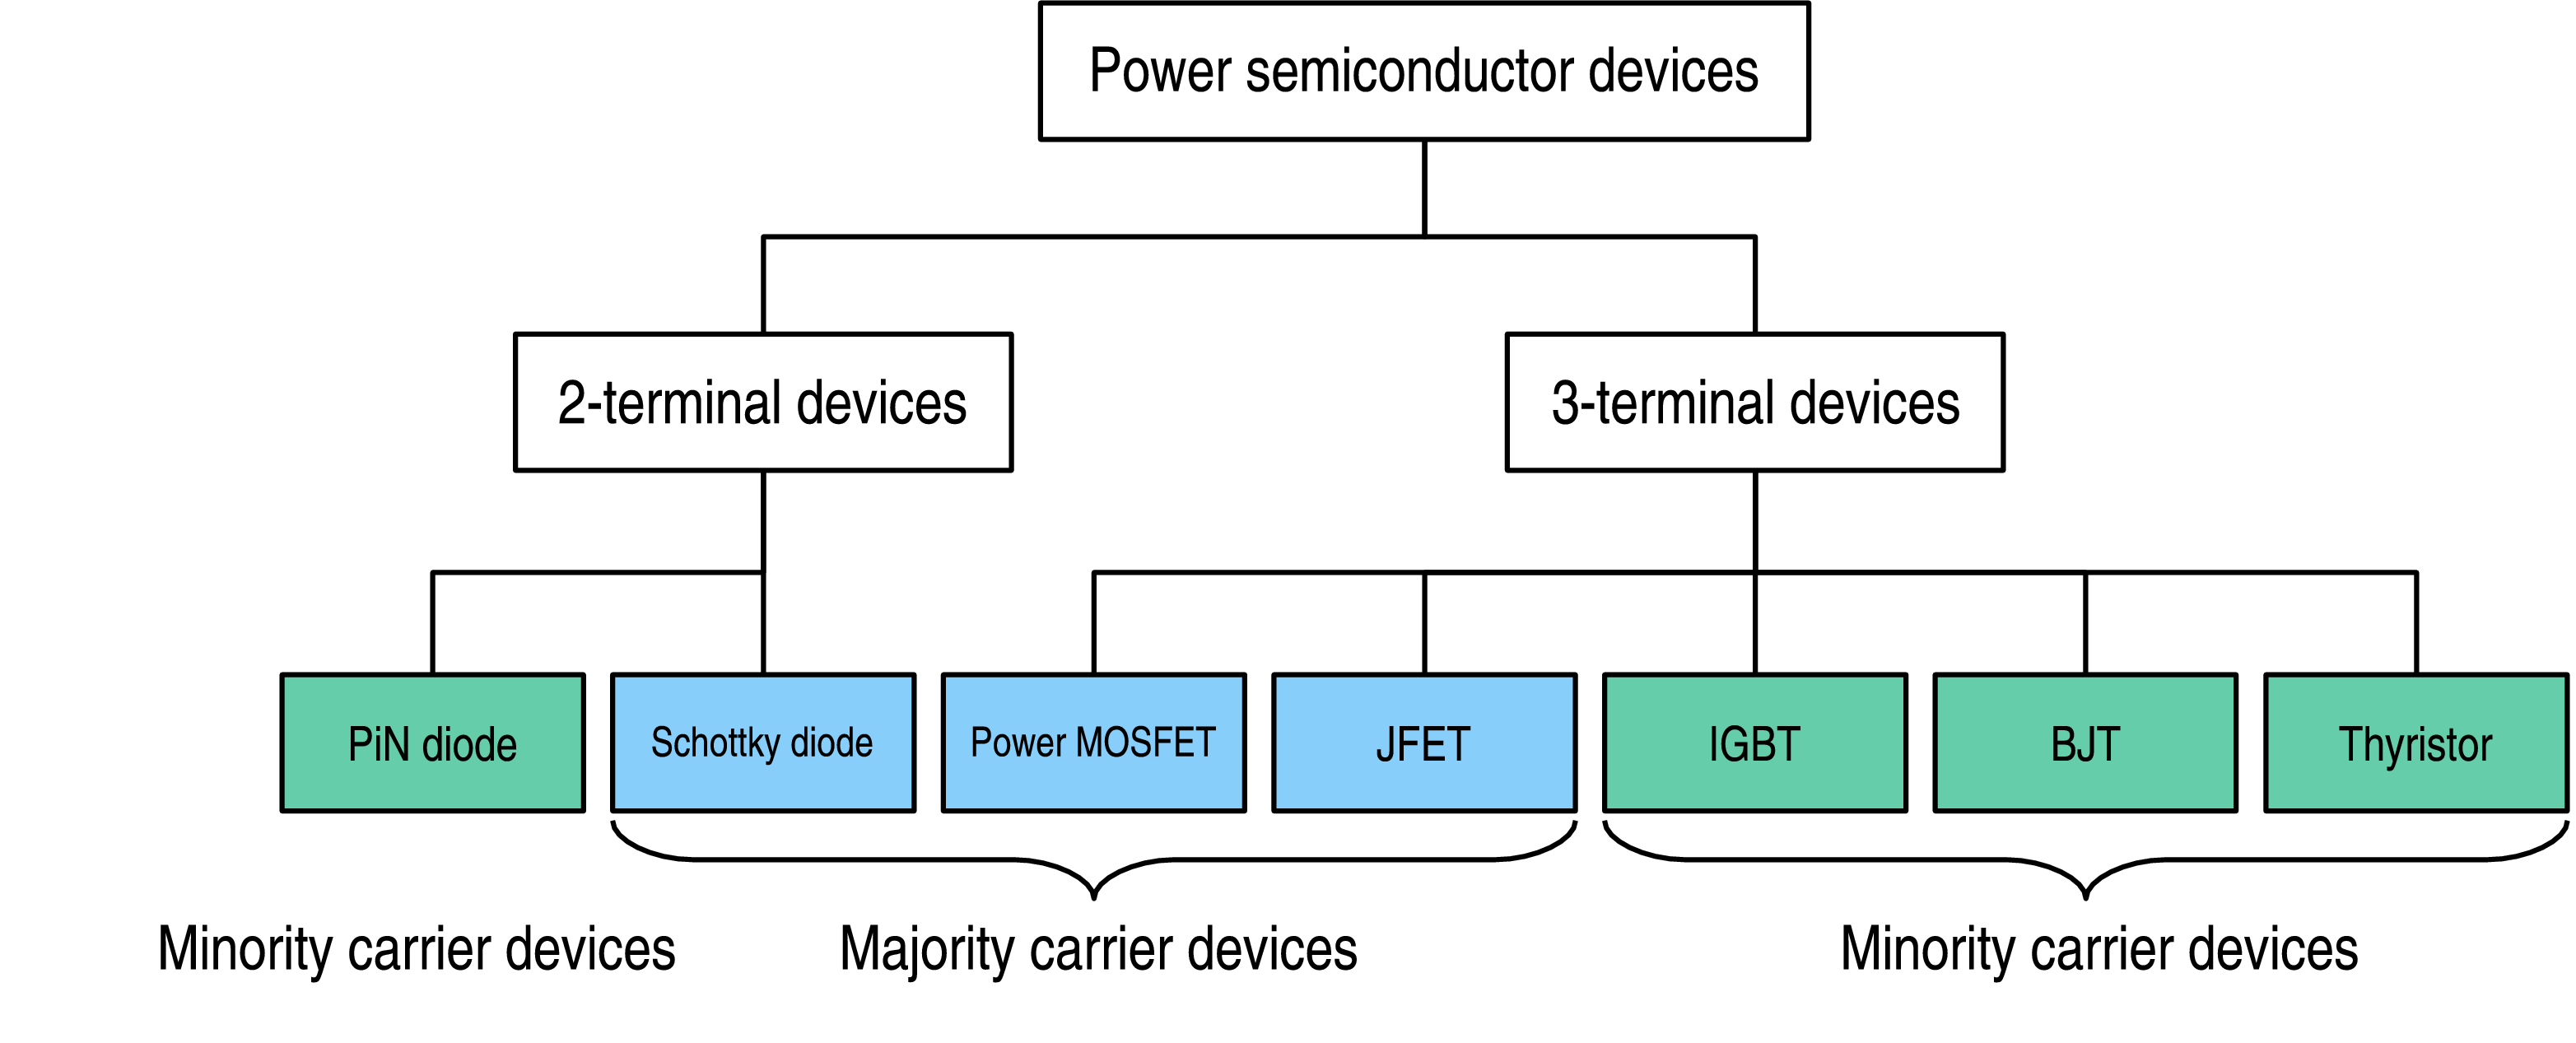 Semi-conductor classification